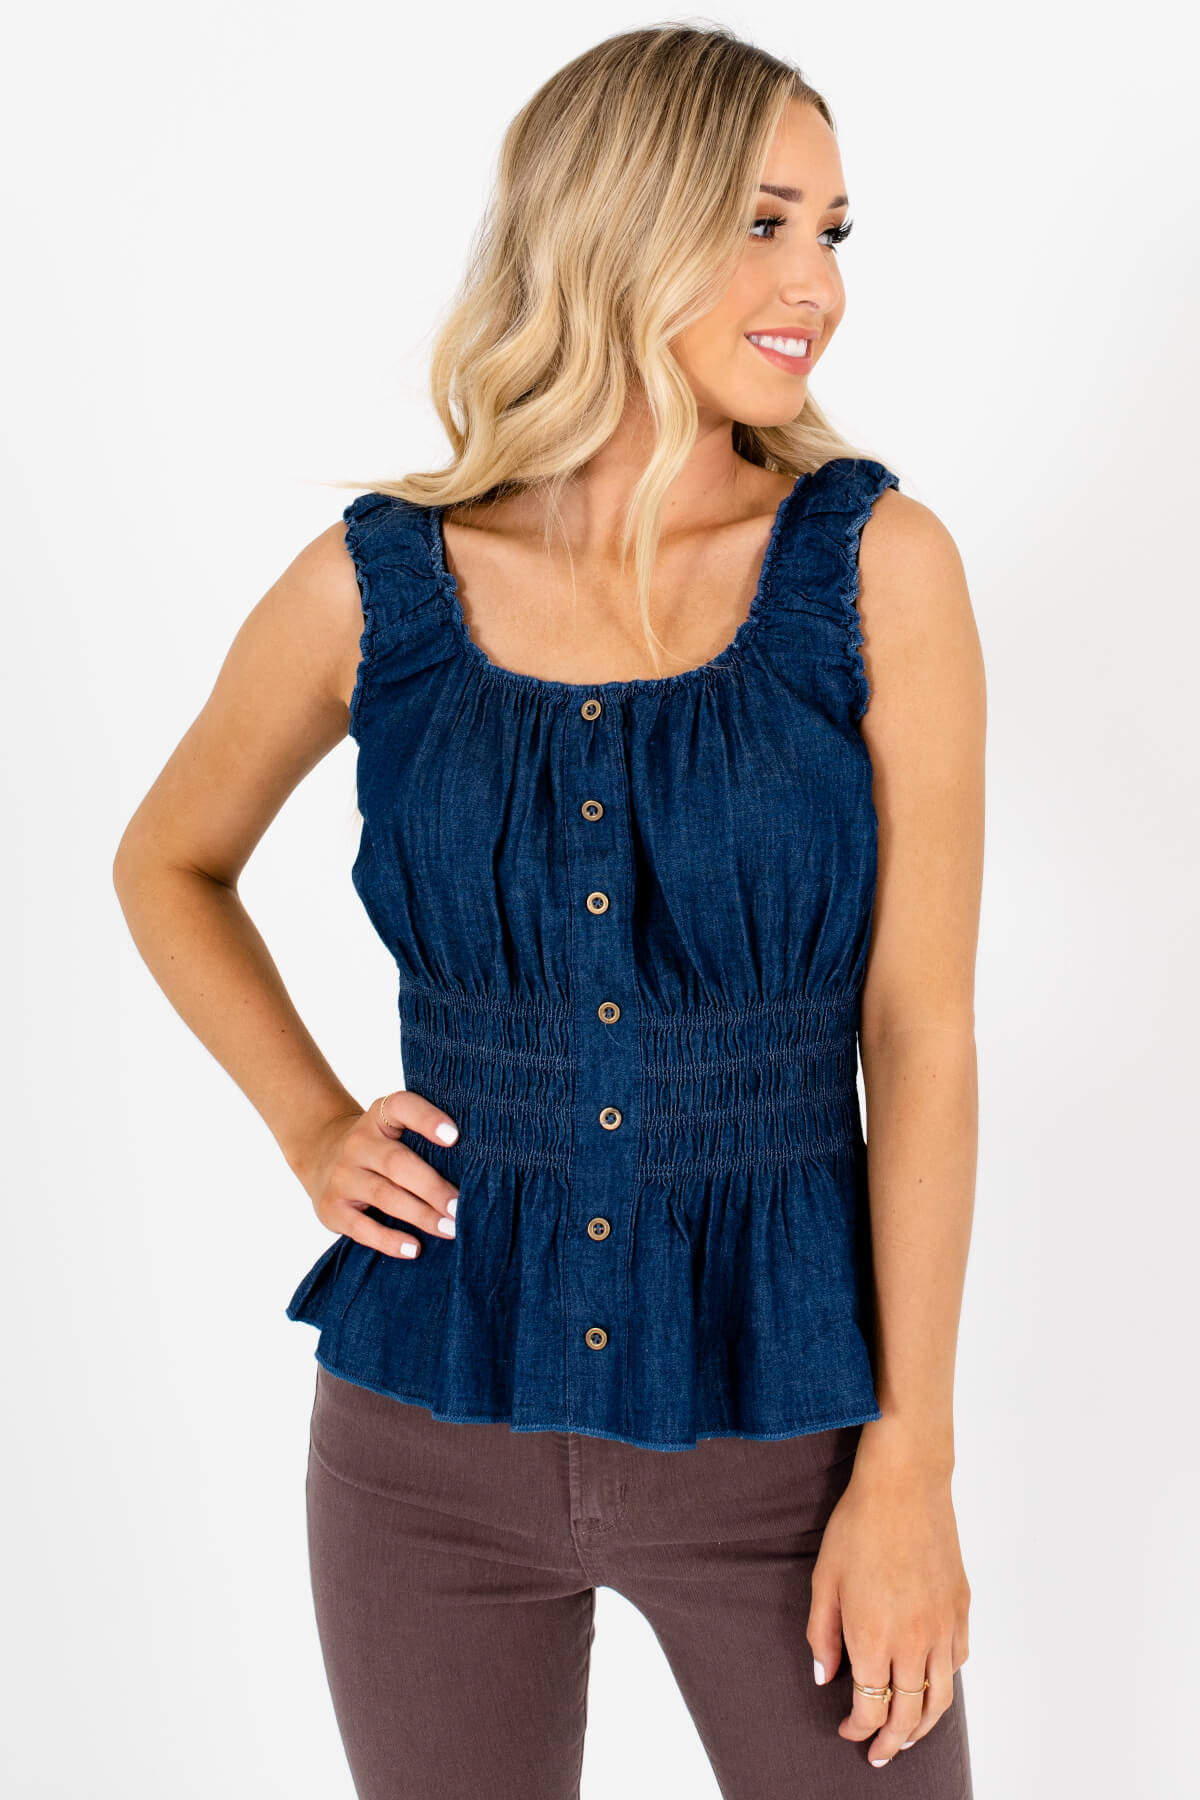 Blue Denim Decorative Button Boutique Tank Tops for Women